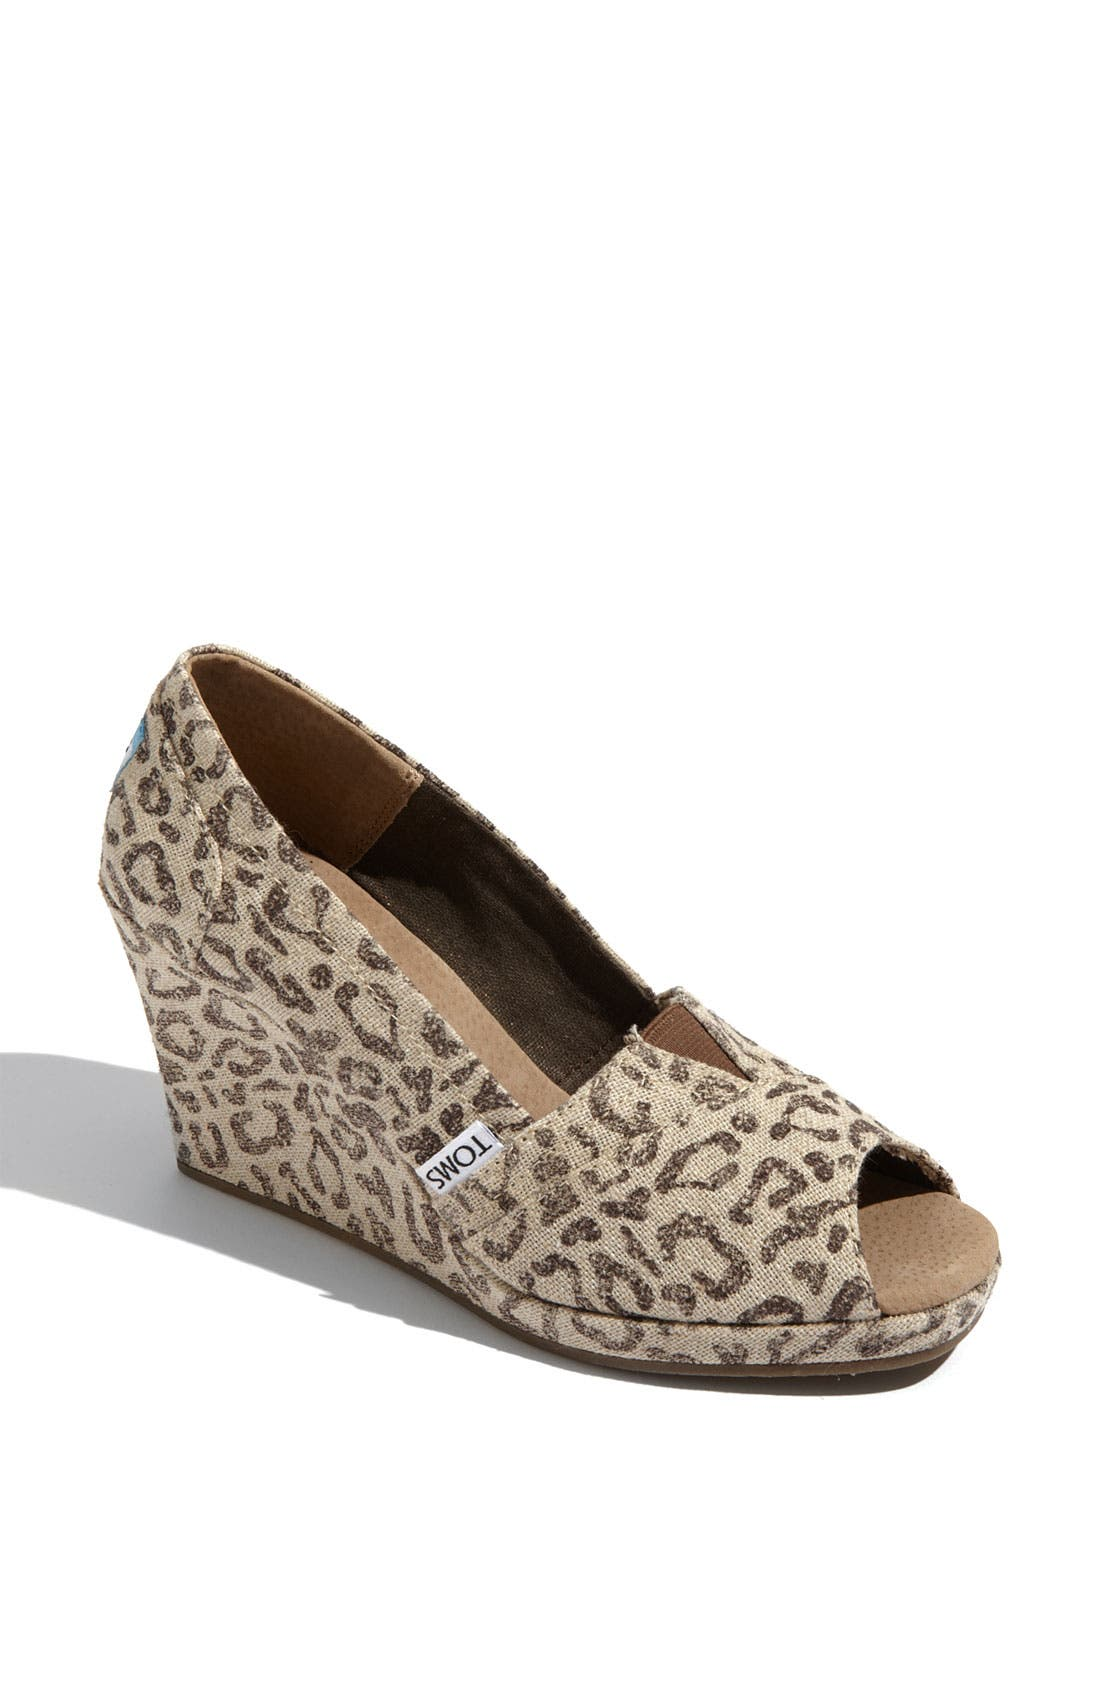 Main Image - TOMS 'Snow Leopard' Burlap Wedge